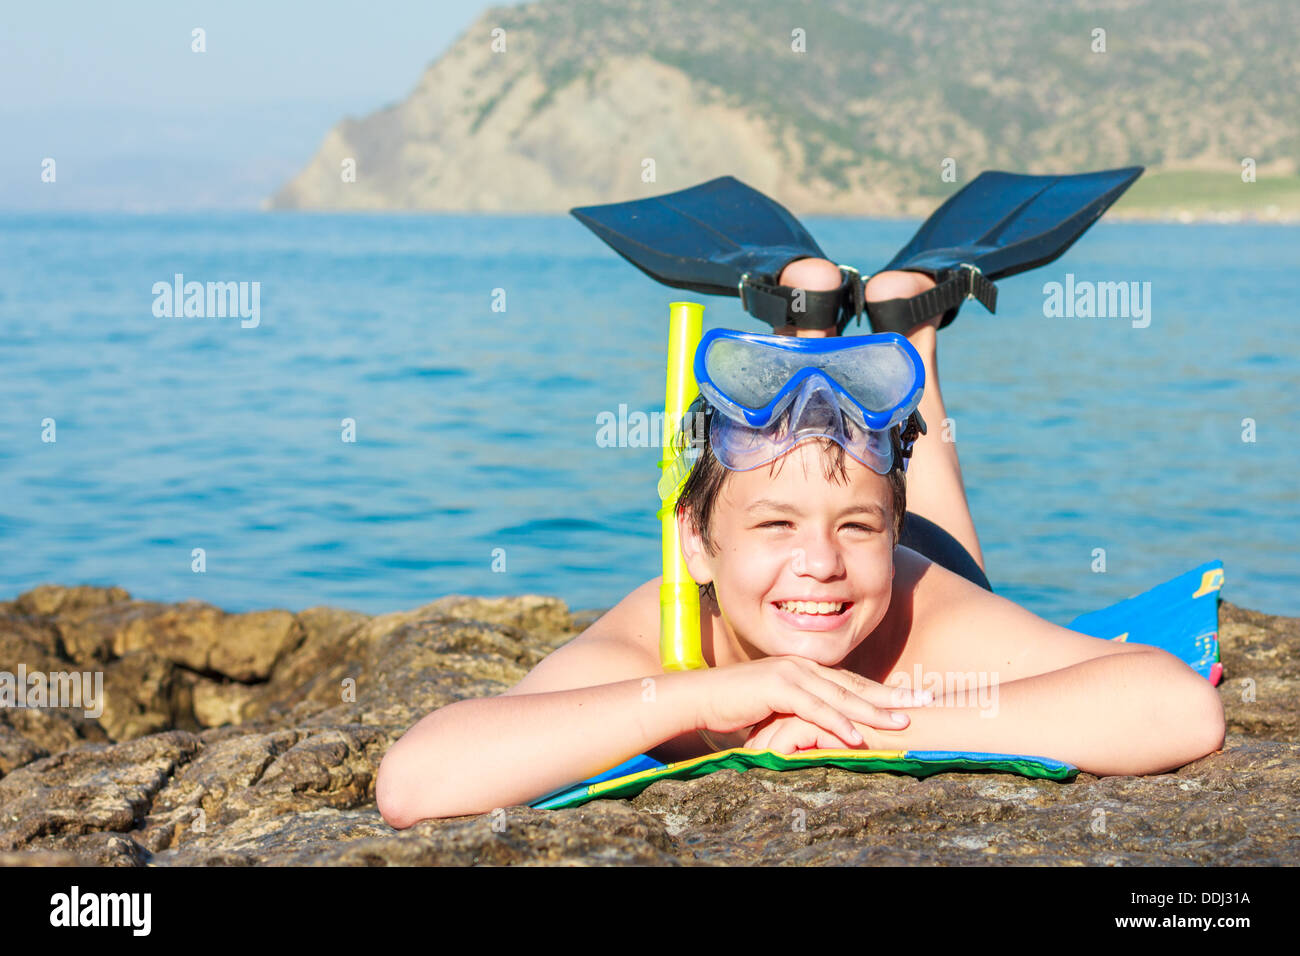 close-up portrait of a happy laughing boy of twelve in a mask and fins on the sea beach - Stock Image